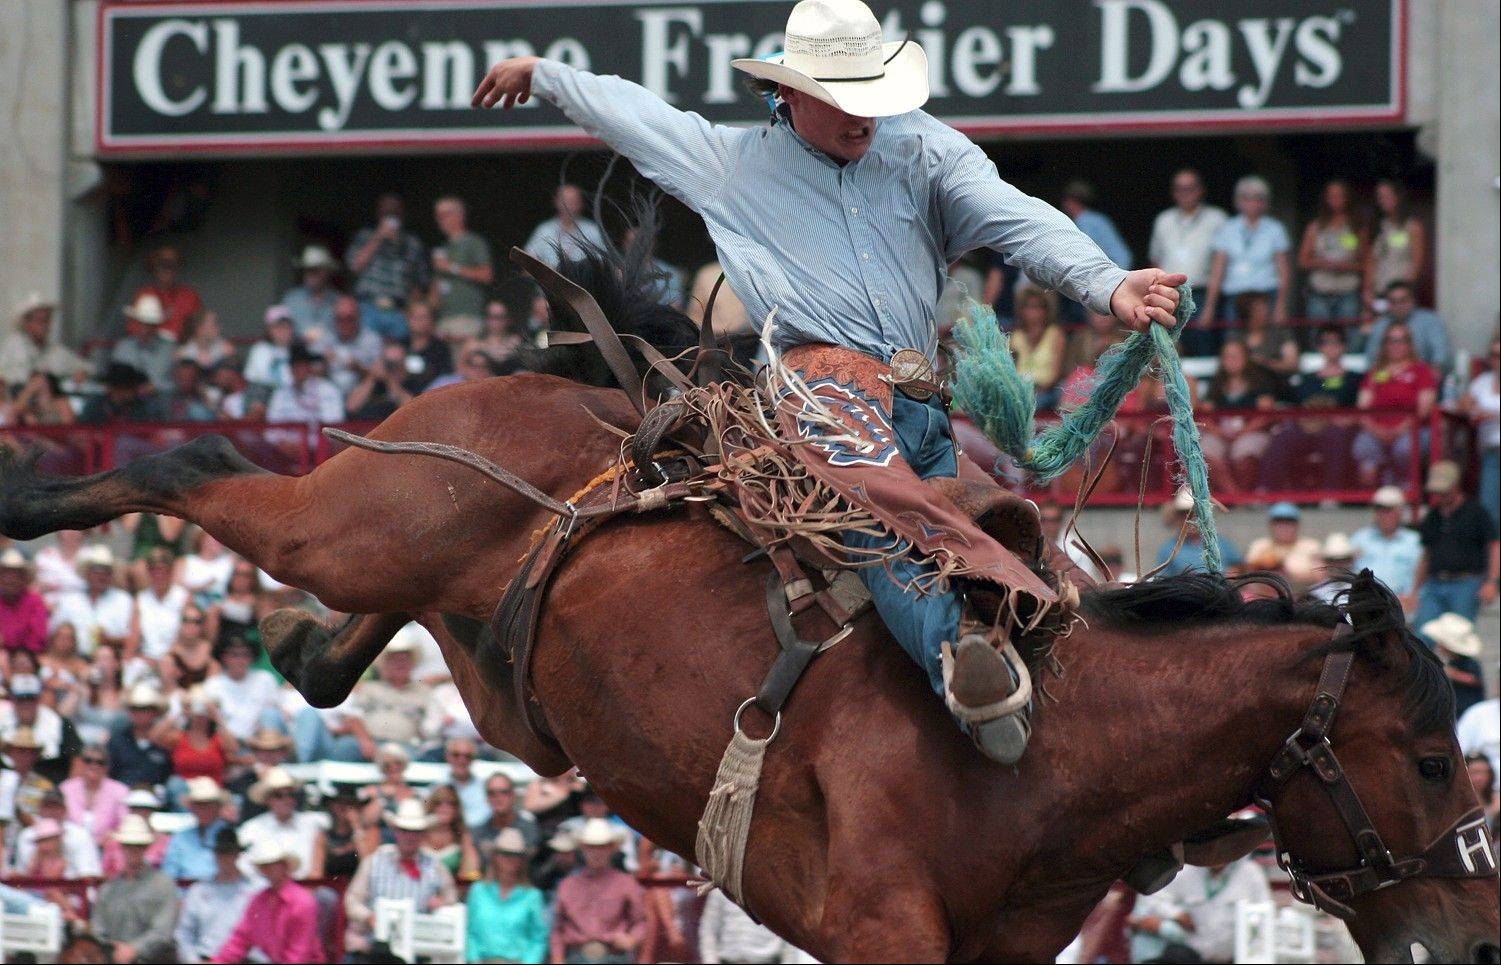 Bucking broncs are just one of the thrilling rodeo events during Cheyenne Frontier Days.